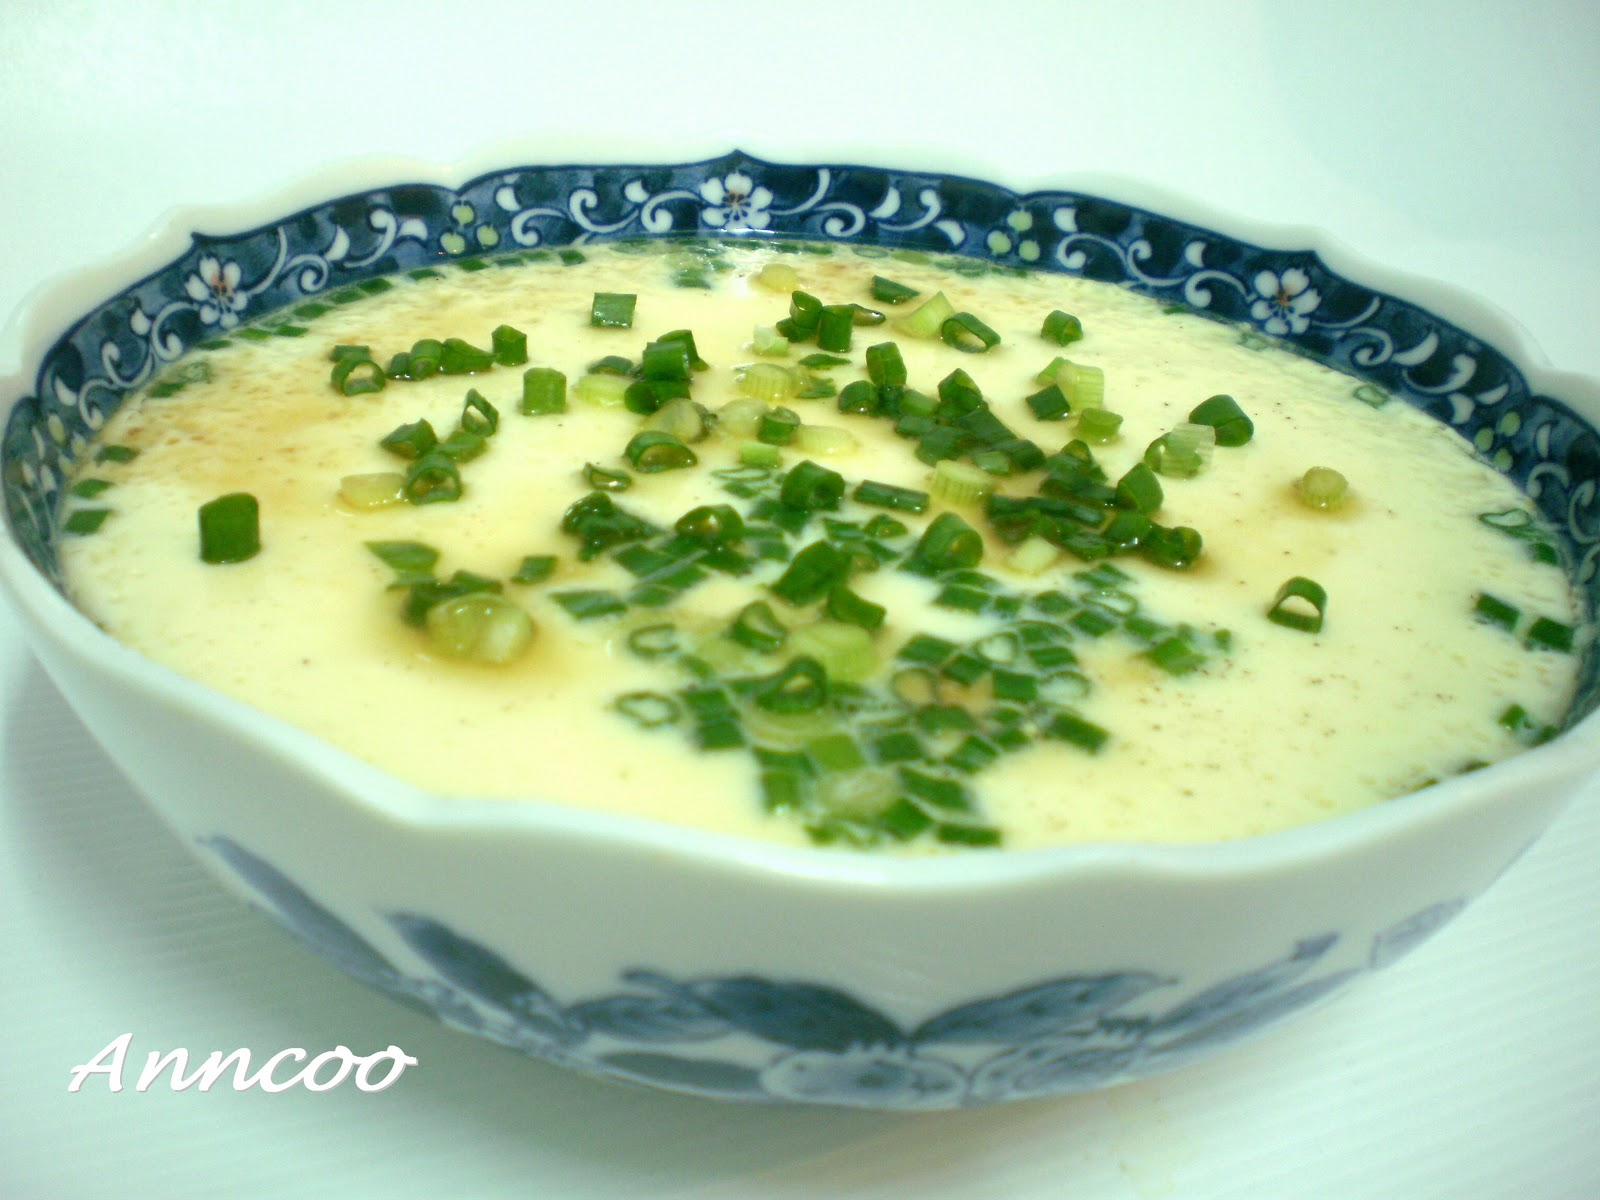 Steamed silky eggs anncoo journal steamed silky eggs forumfinder Gallery